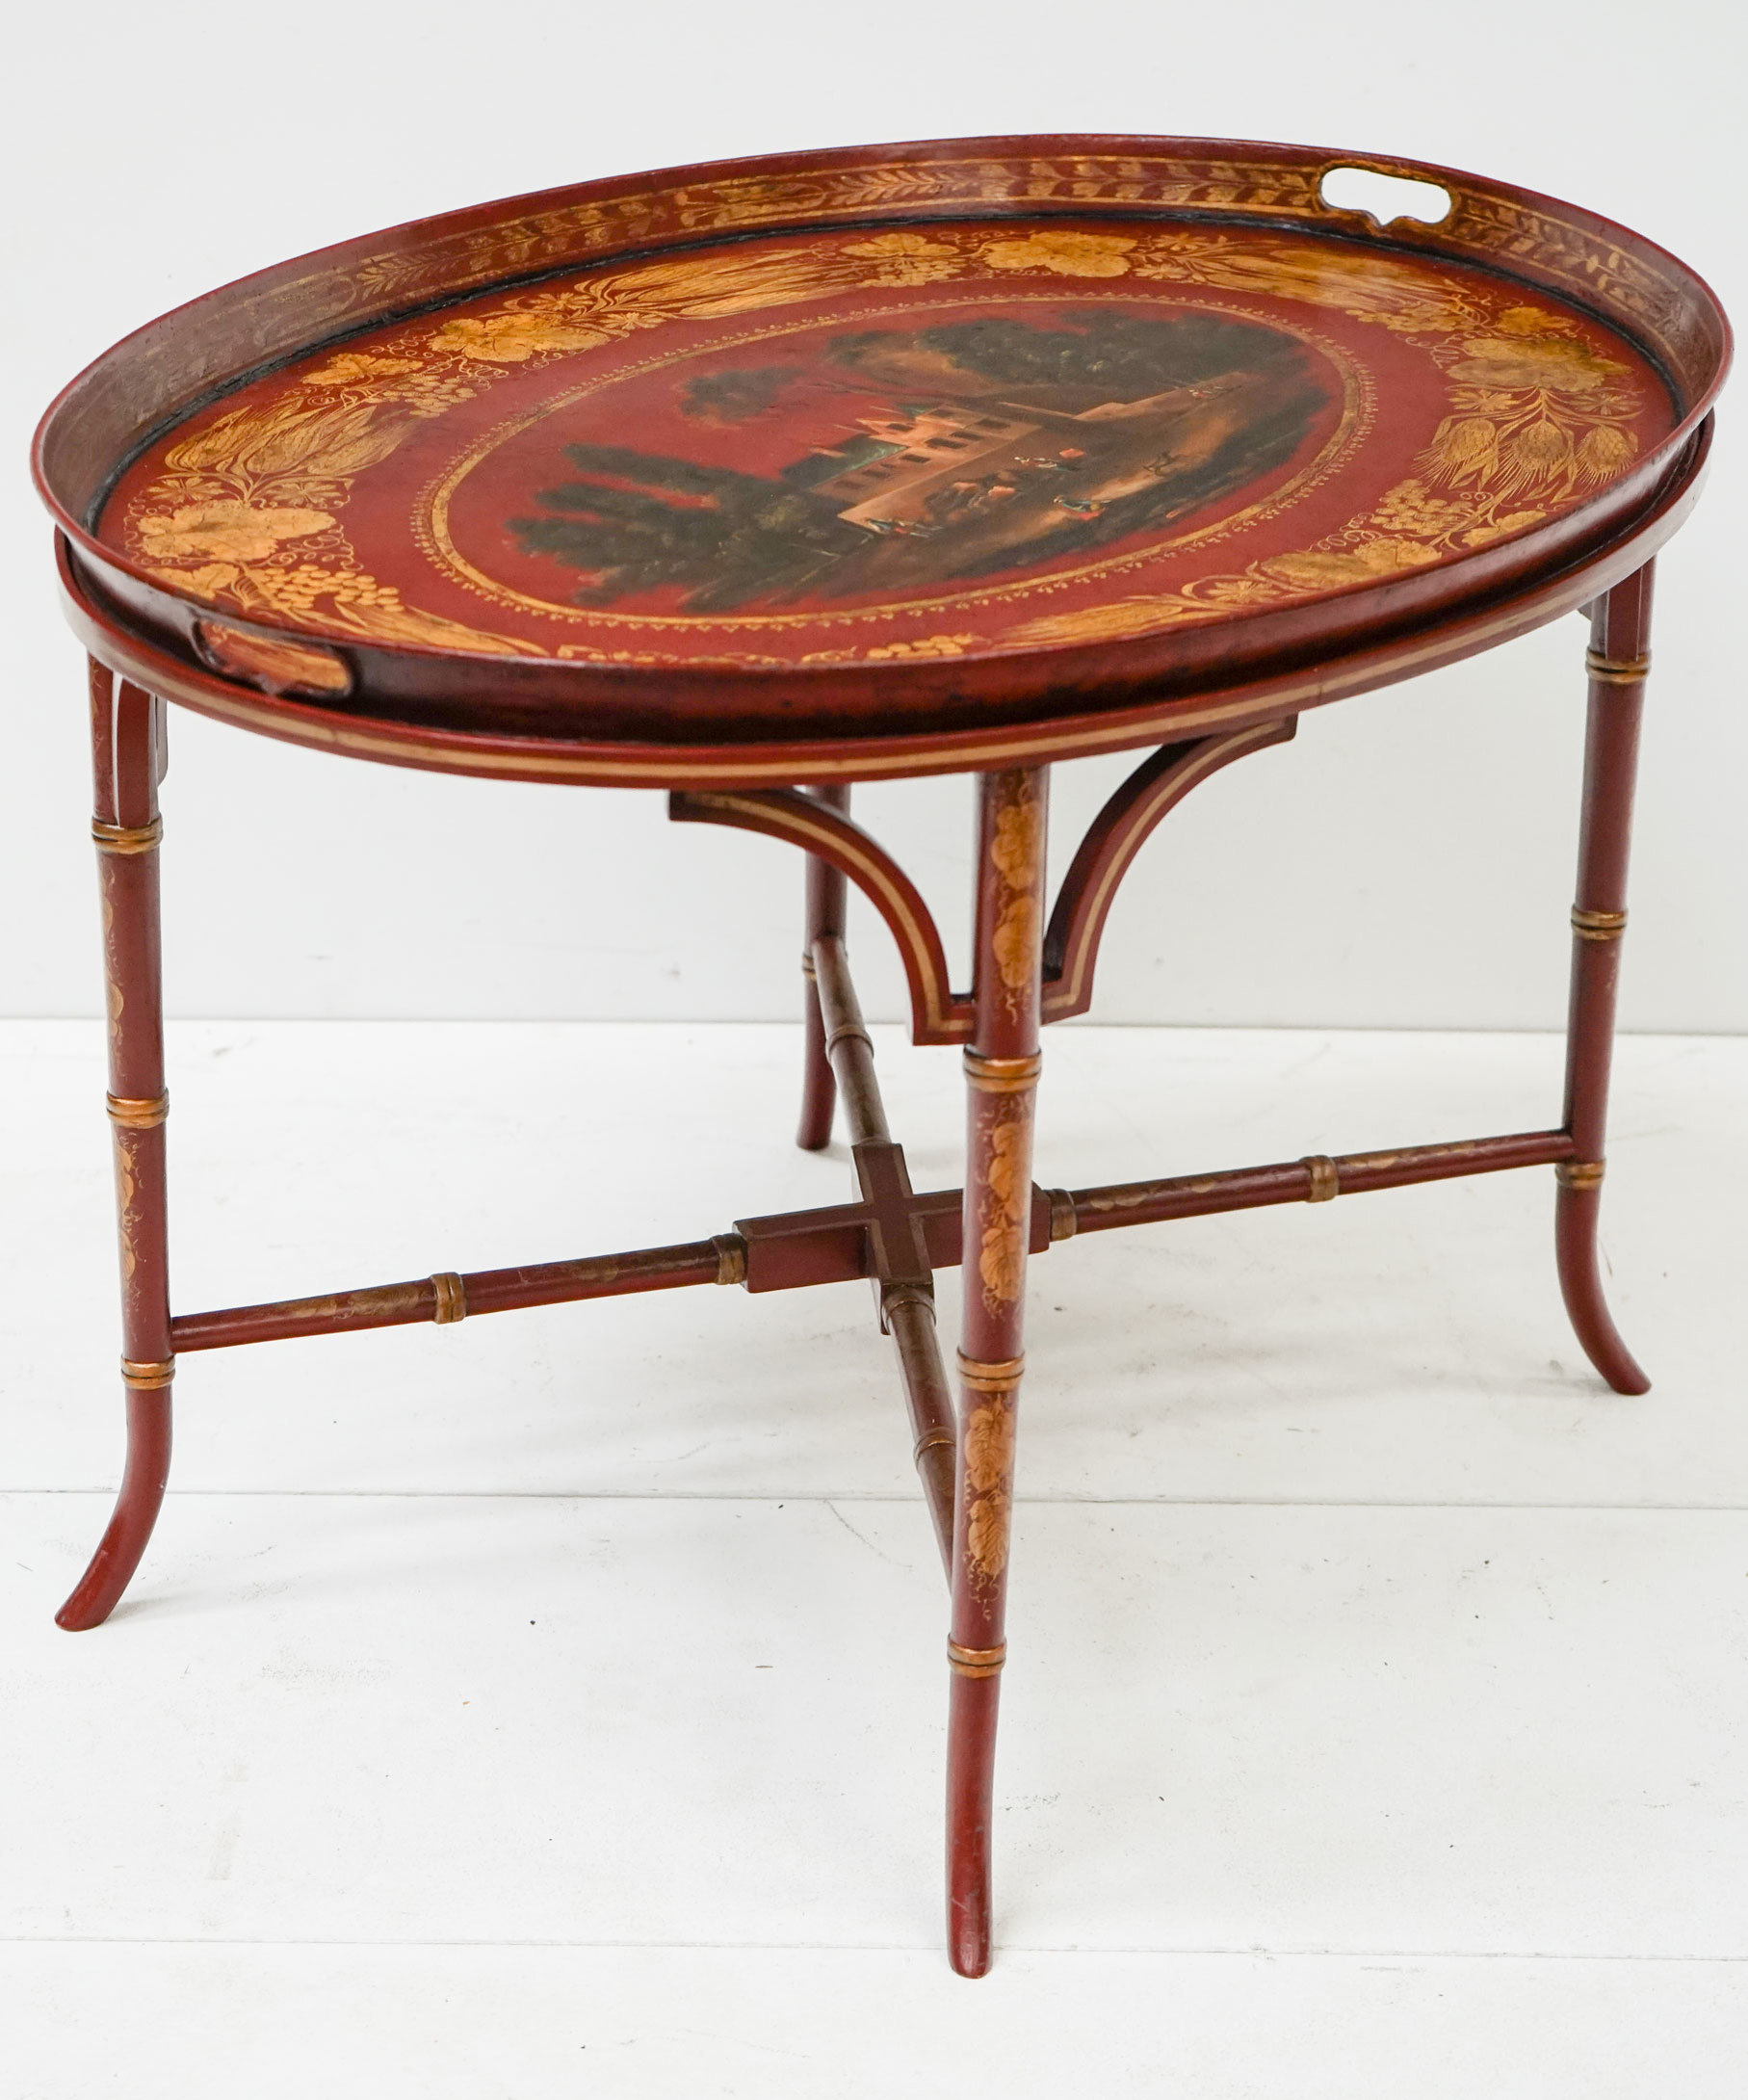 Antique Toleware Coffee Table Reindeer Antiques